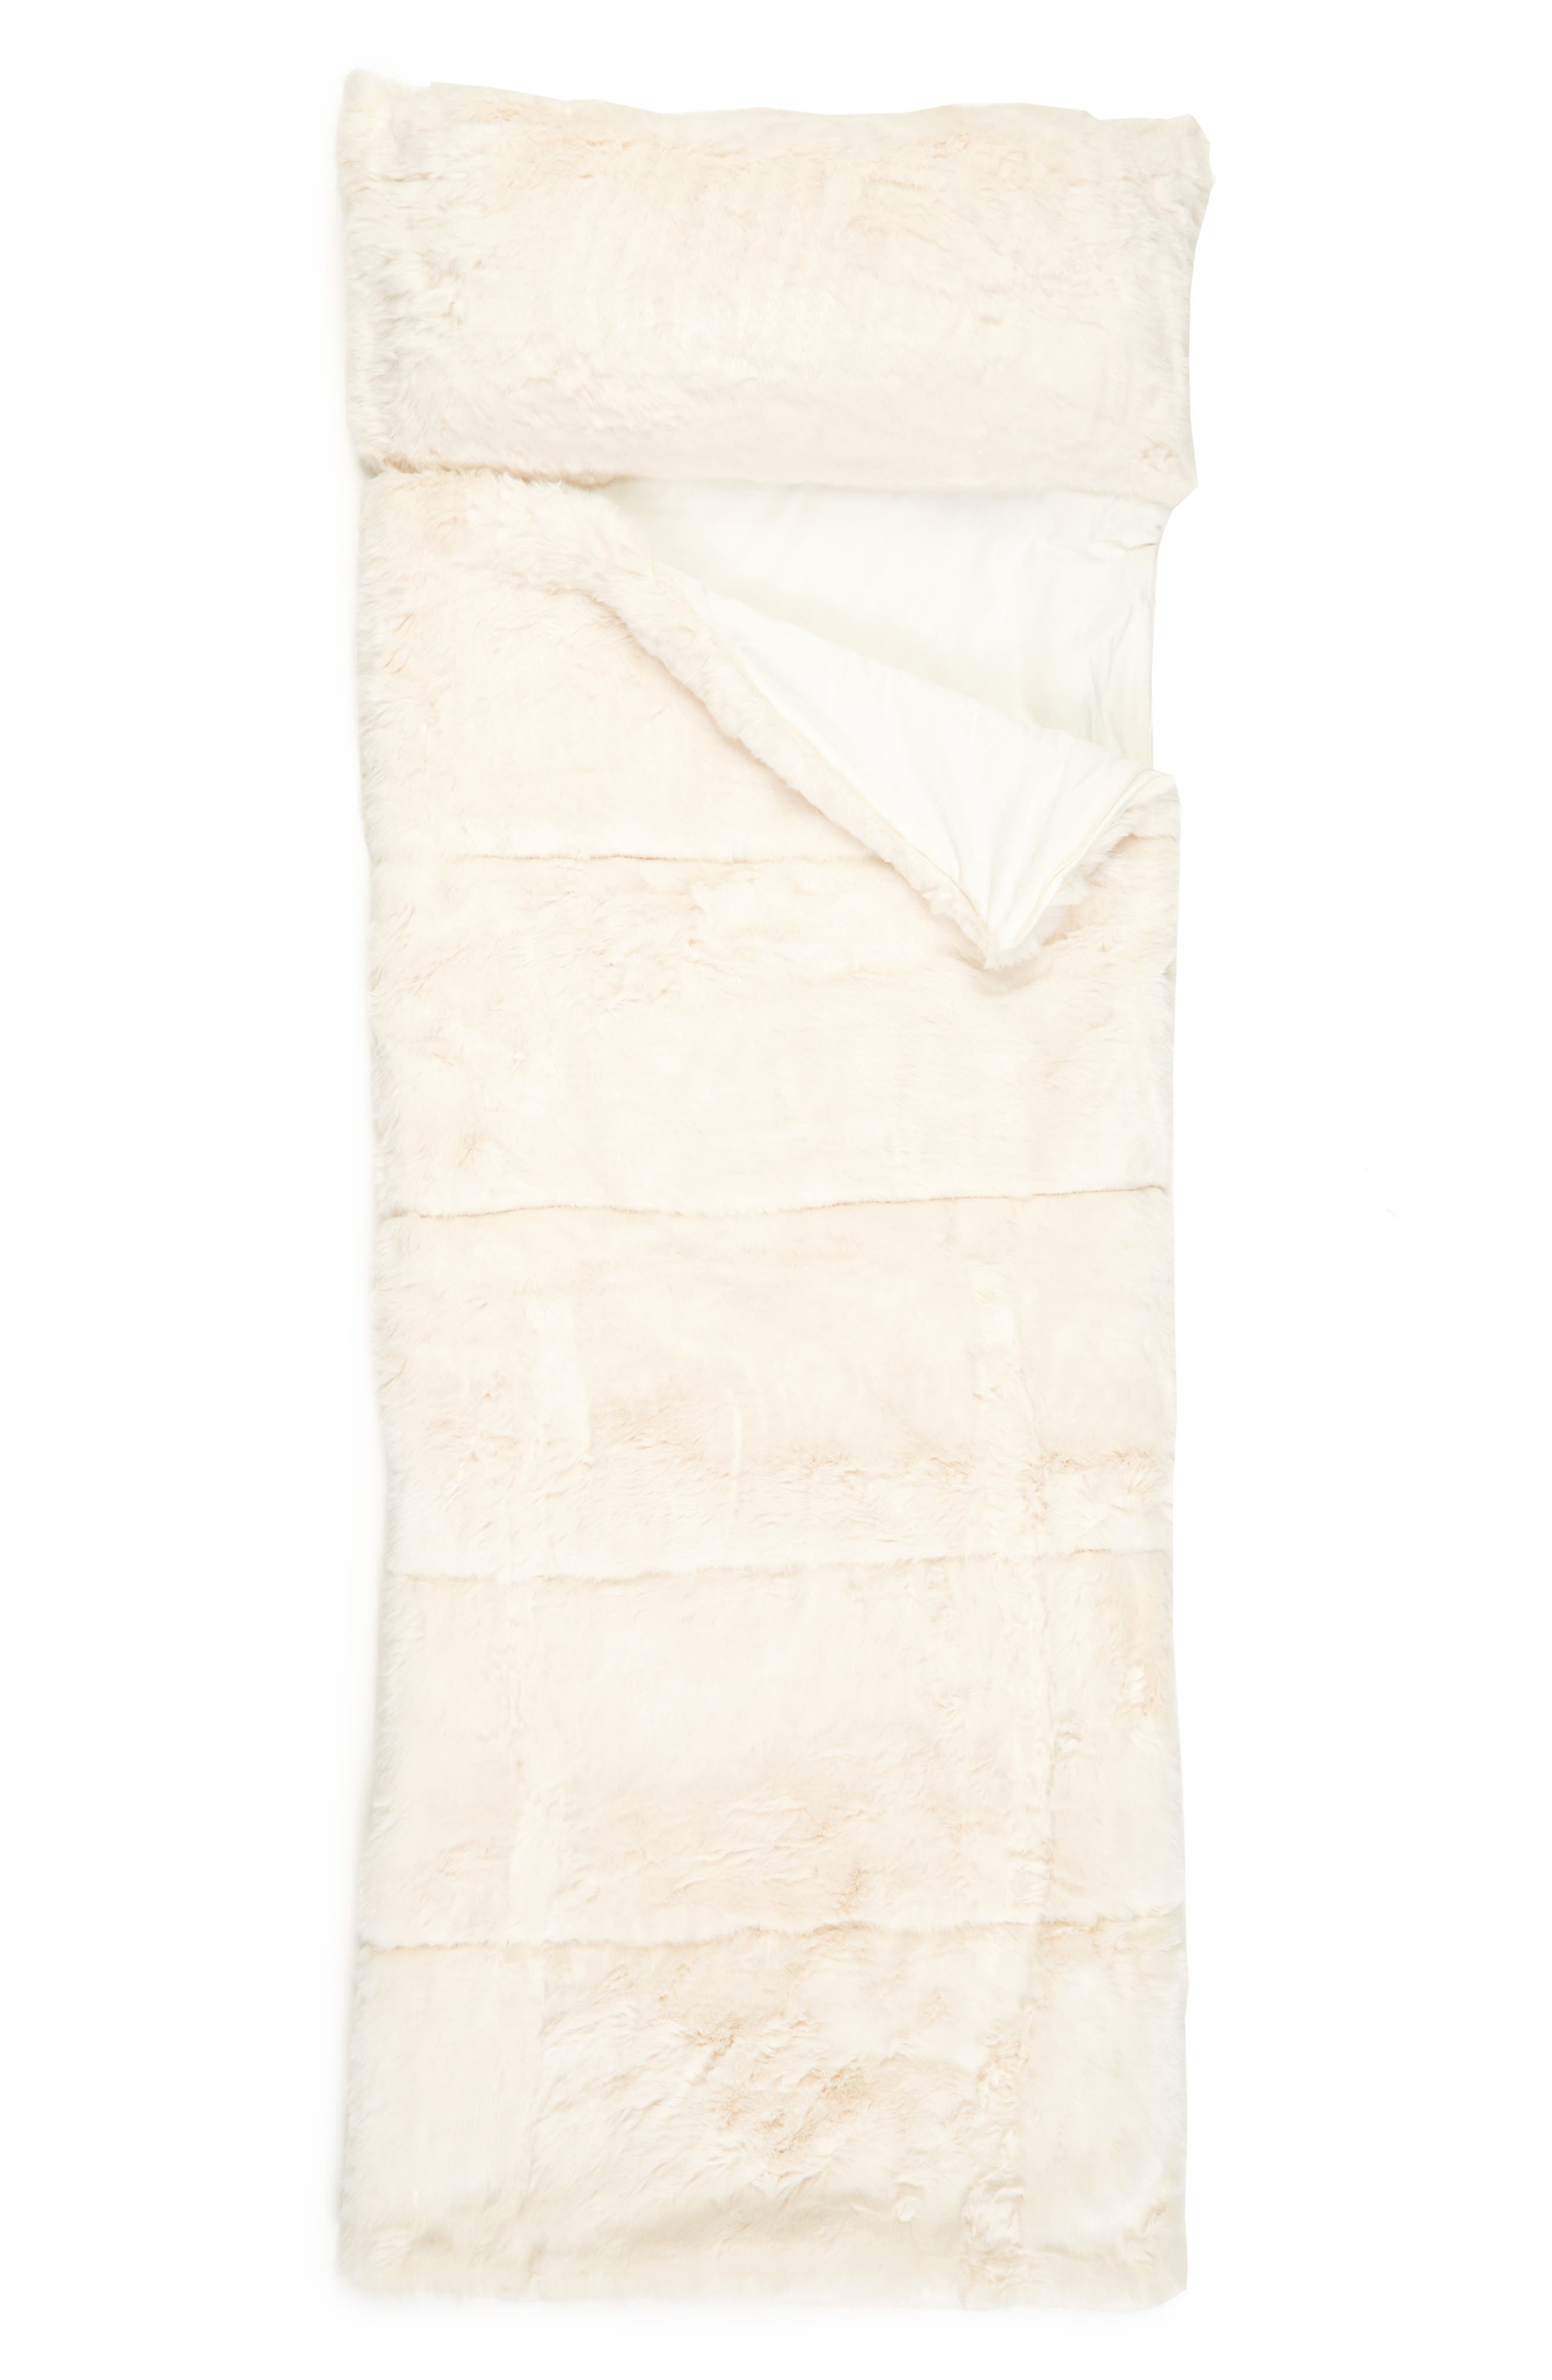 Cuddle Up Faux Fur Sleeping Bag,                         Main,                         color, Ivory